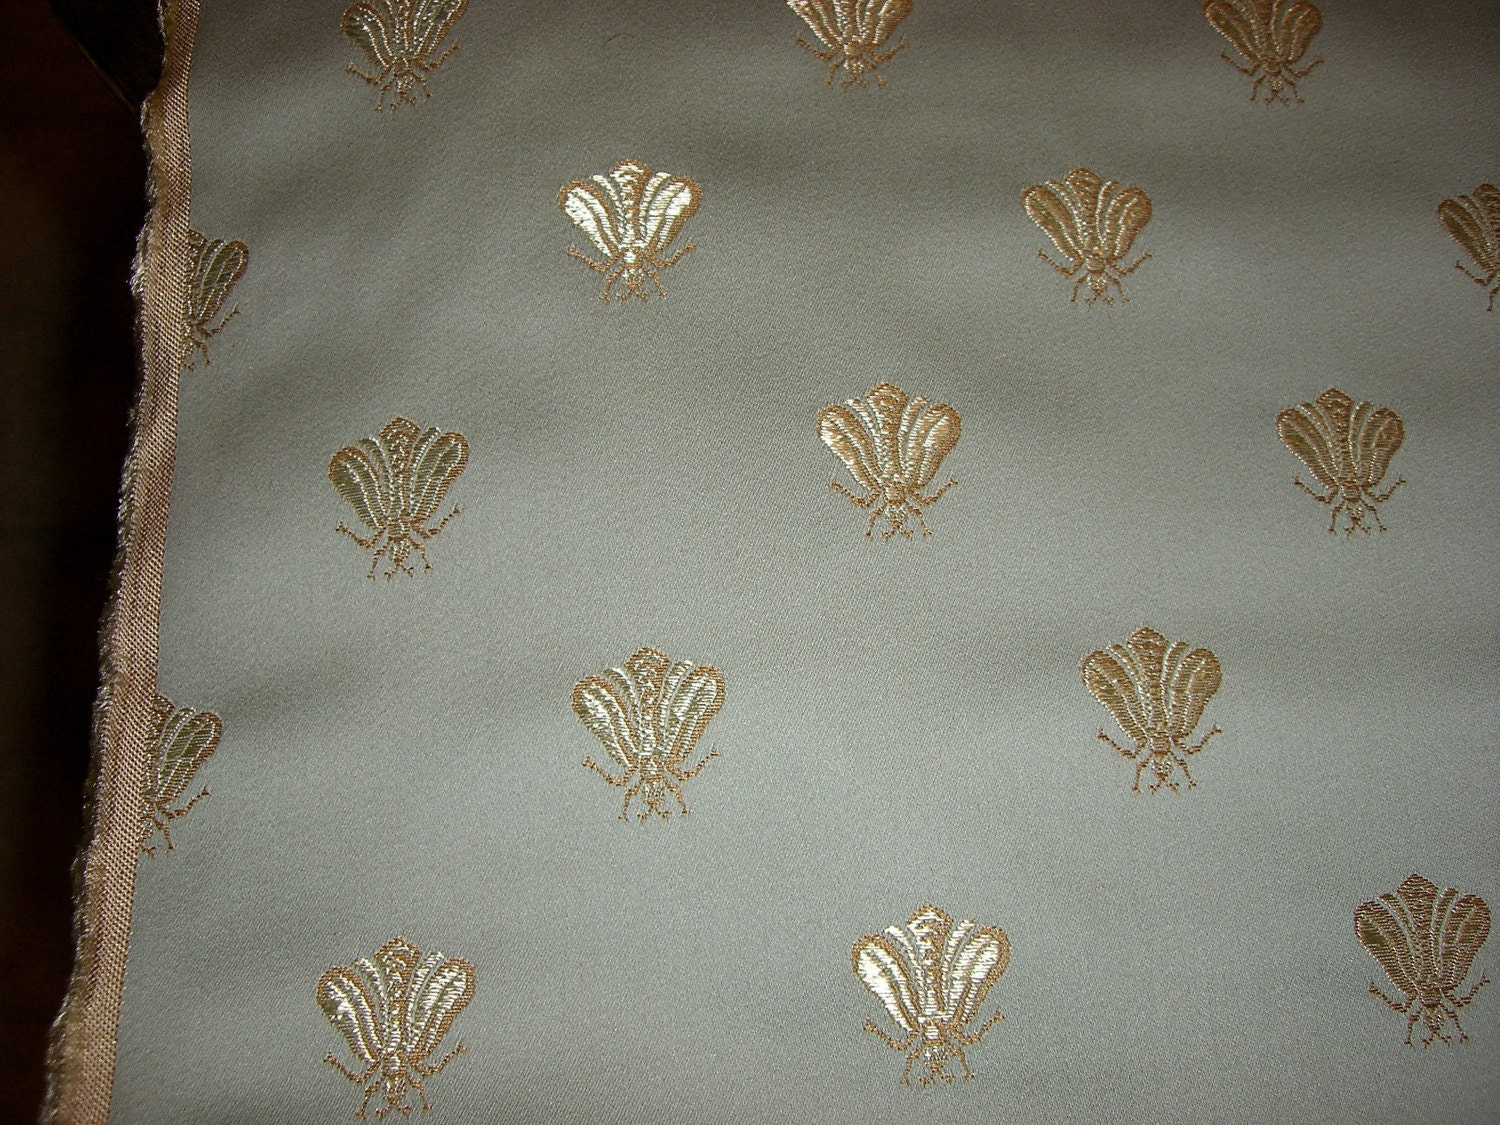 Vintage Upholstery Fabric With Golden Honey Bees